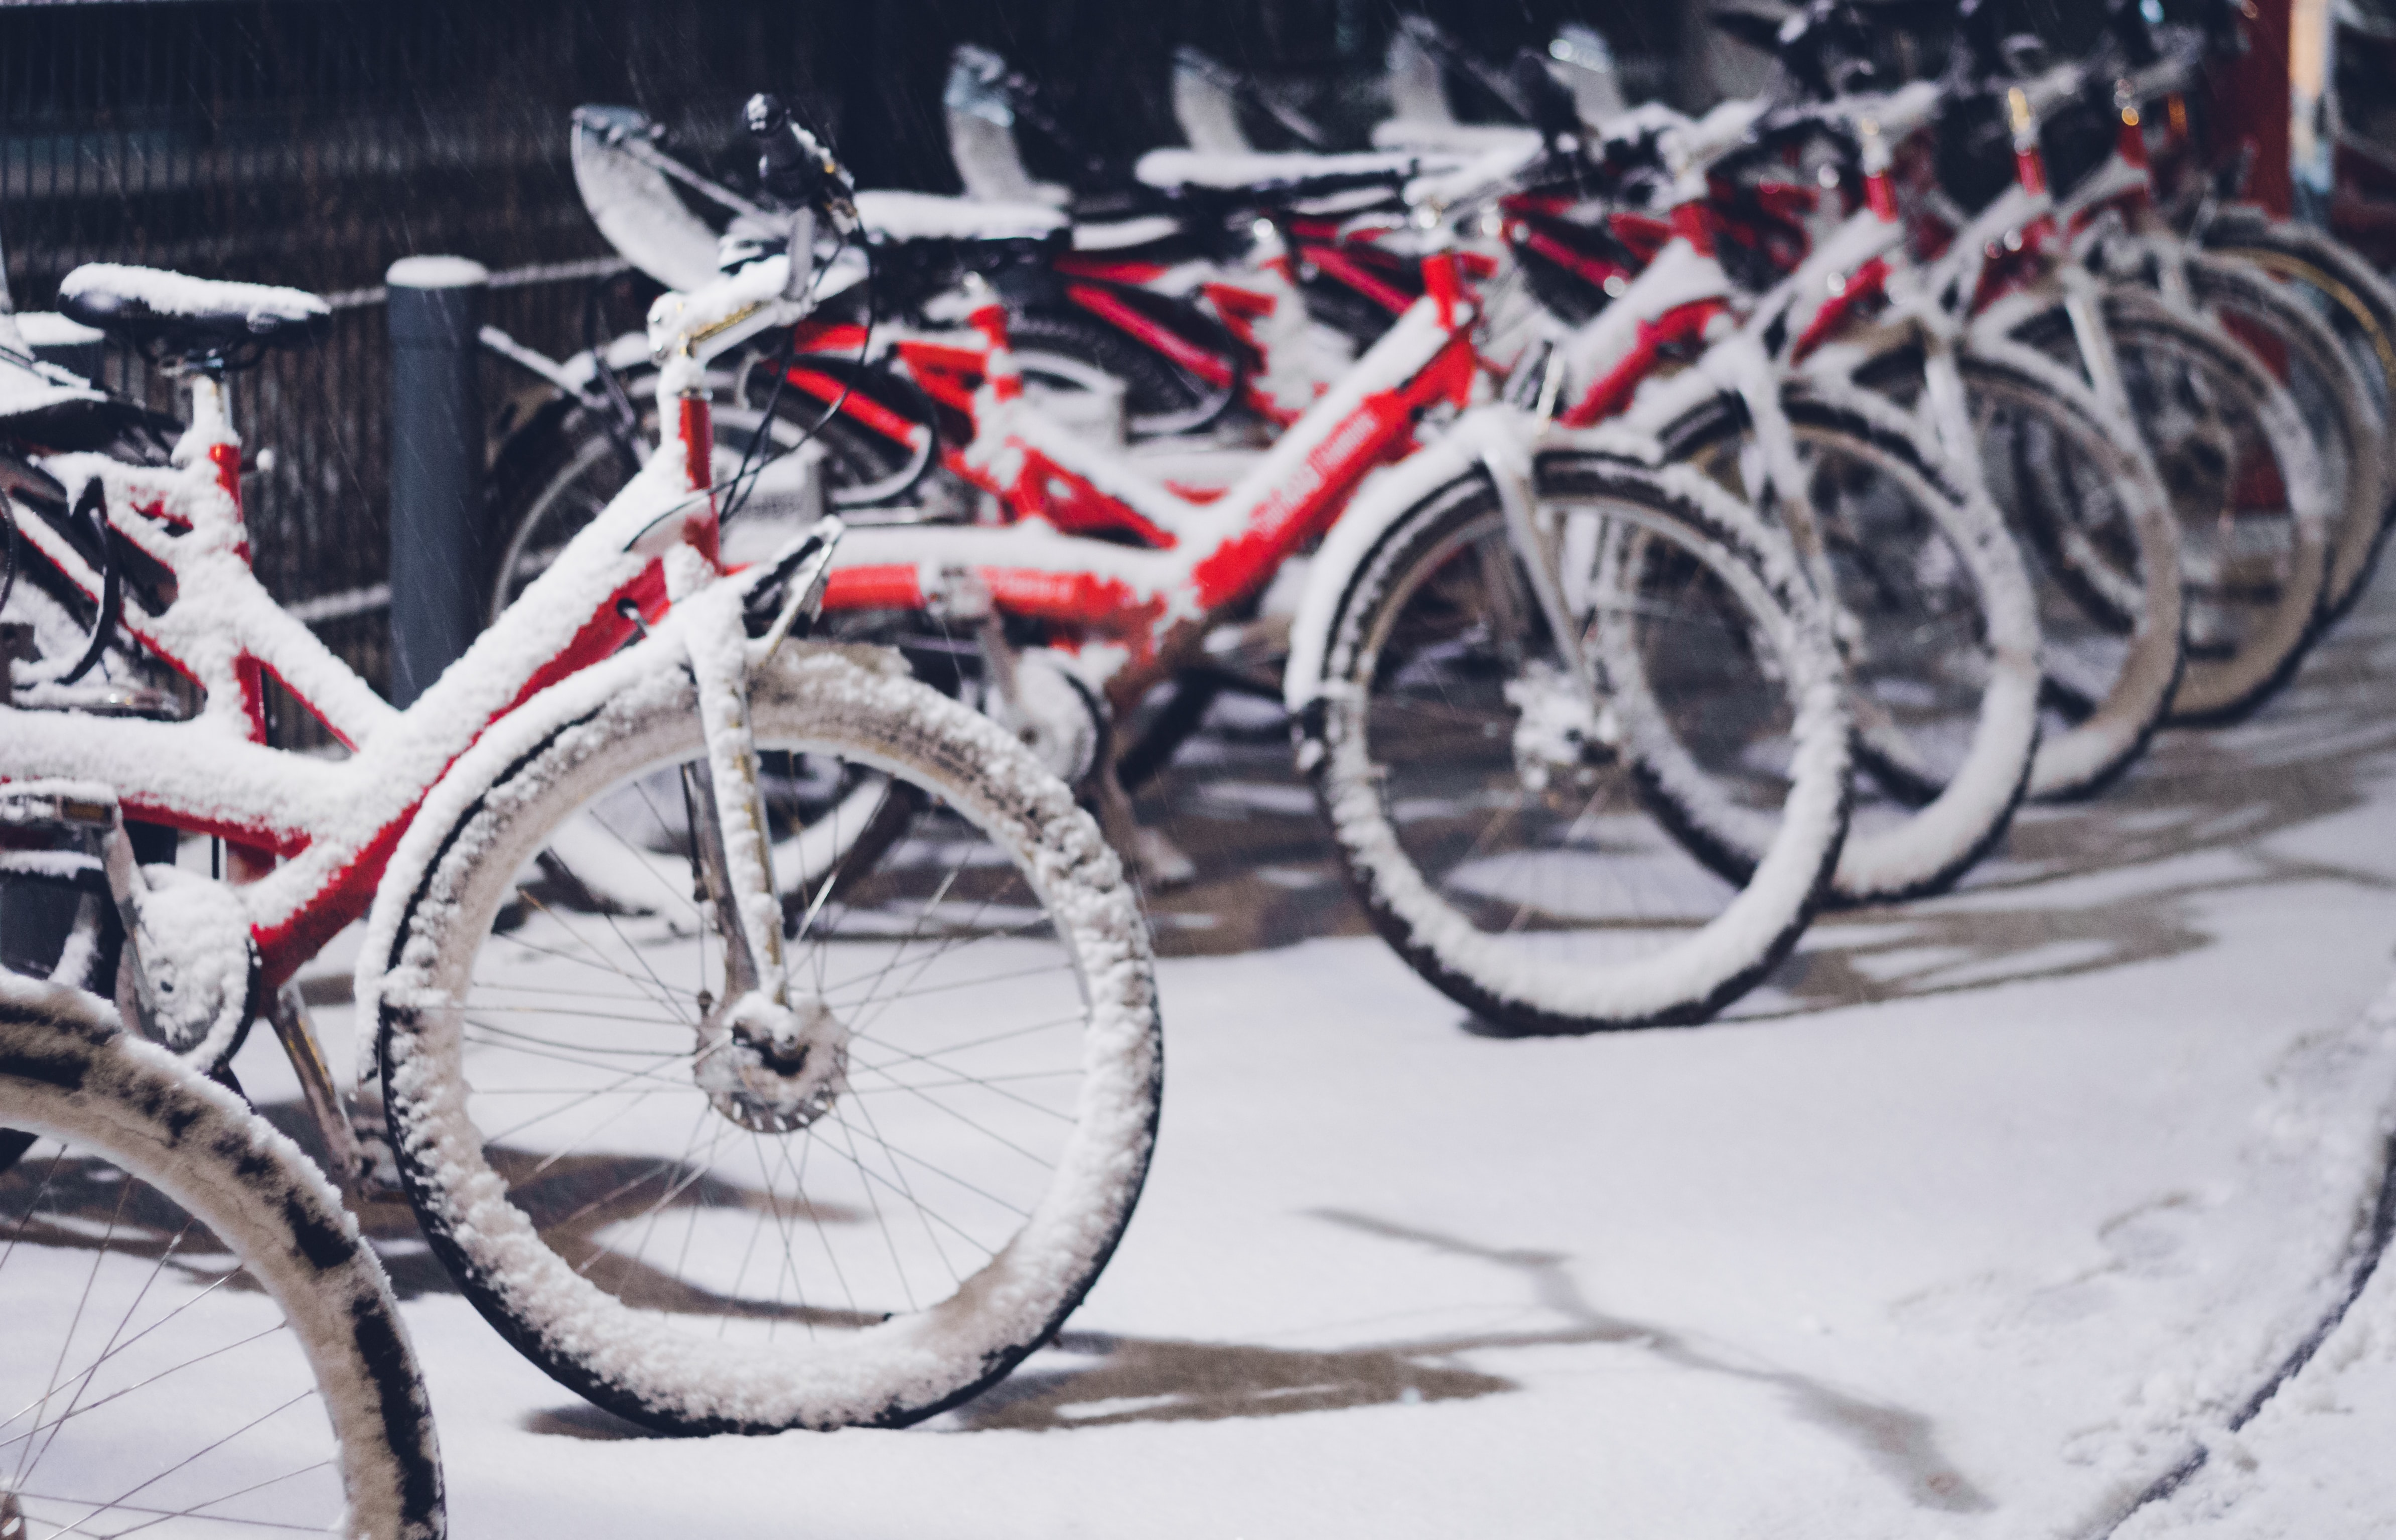 red and black bikes covered with snow